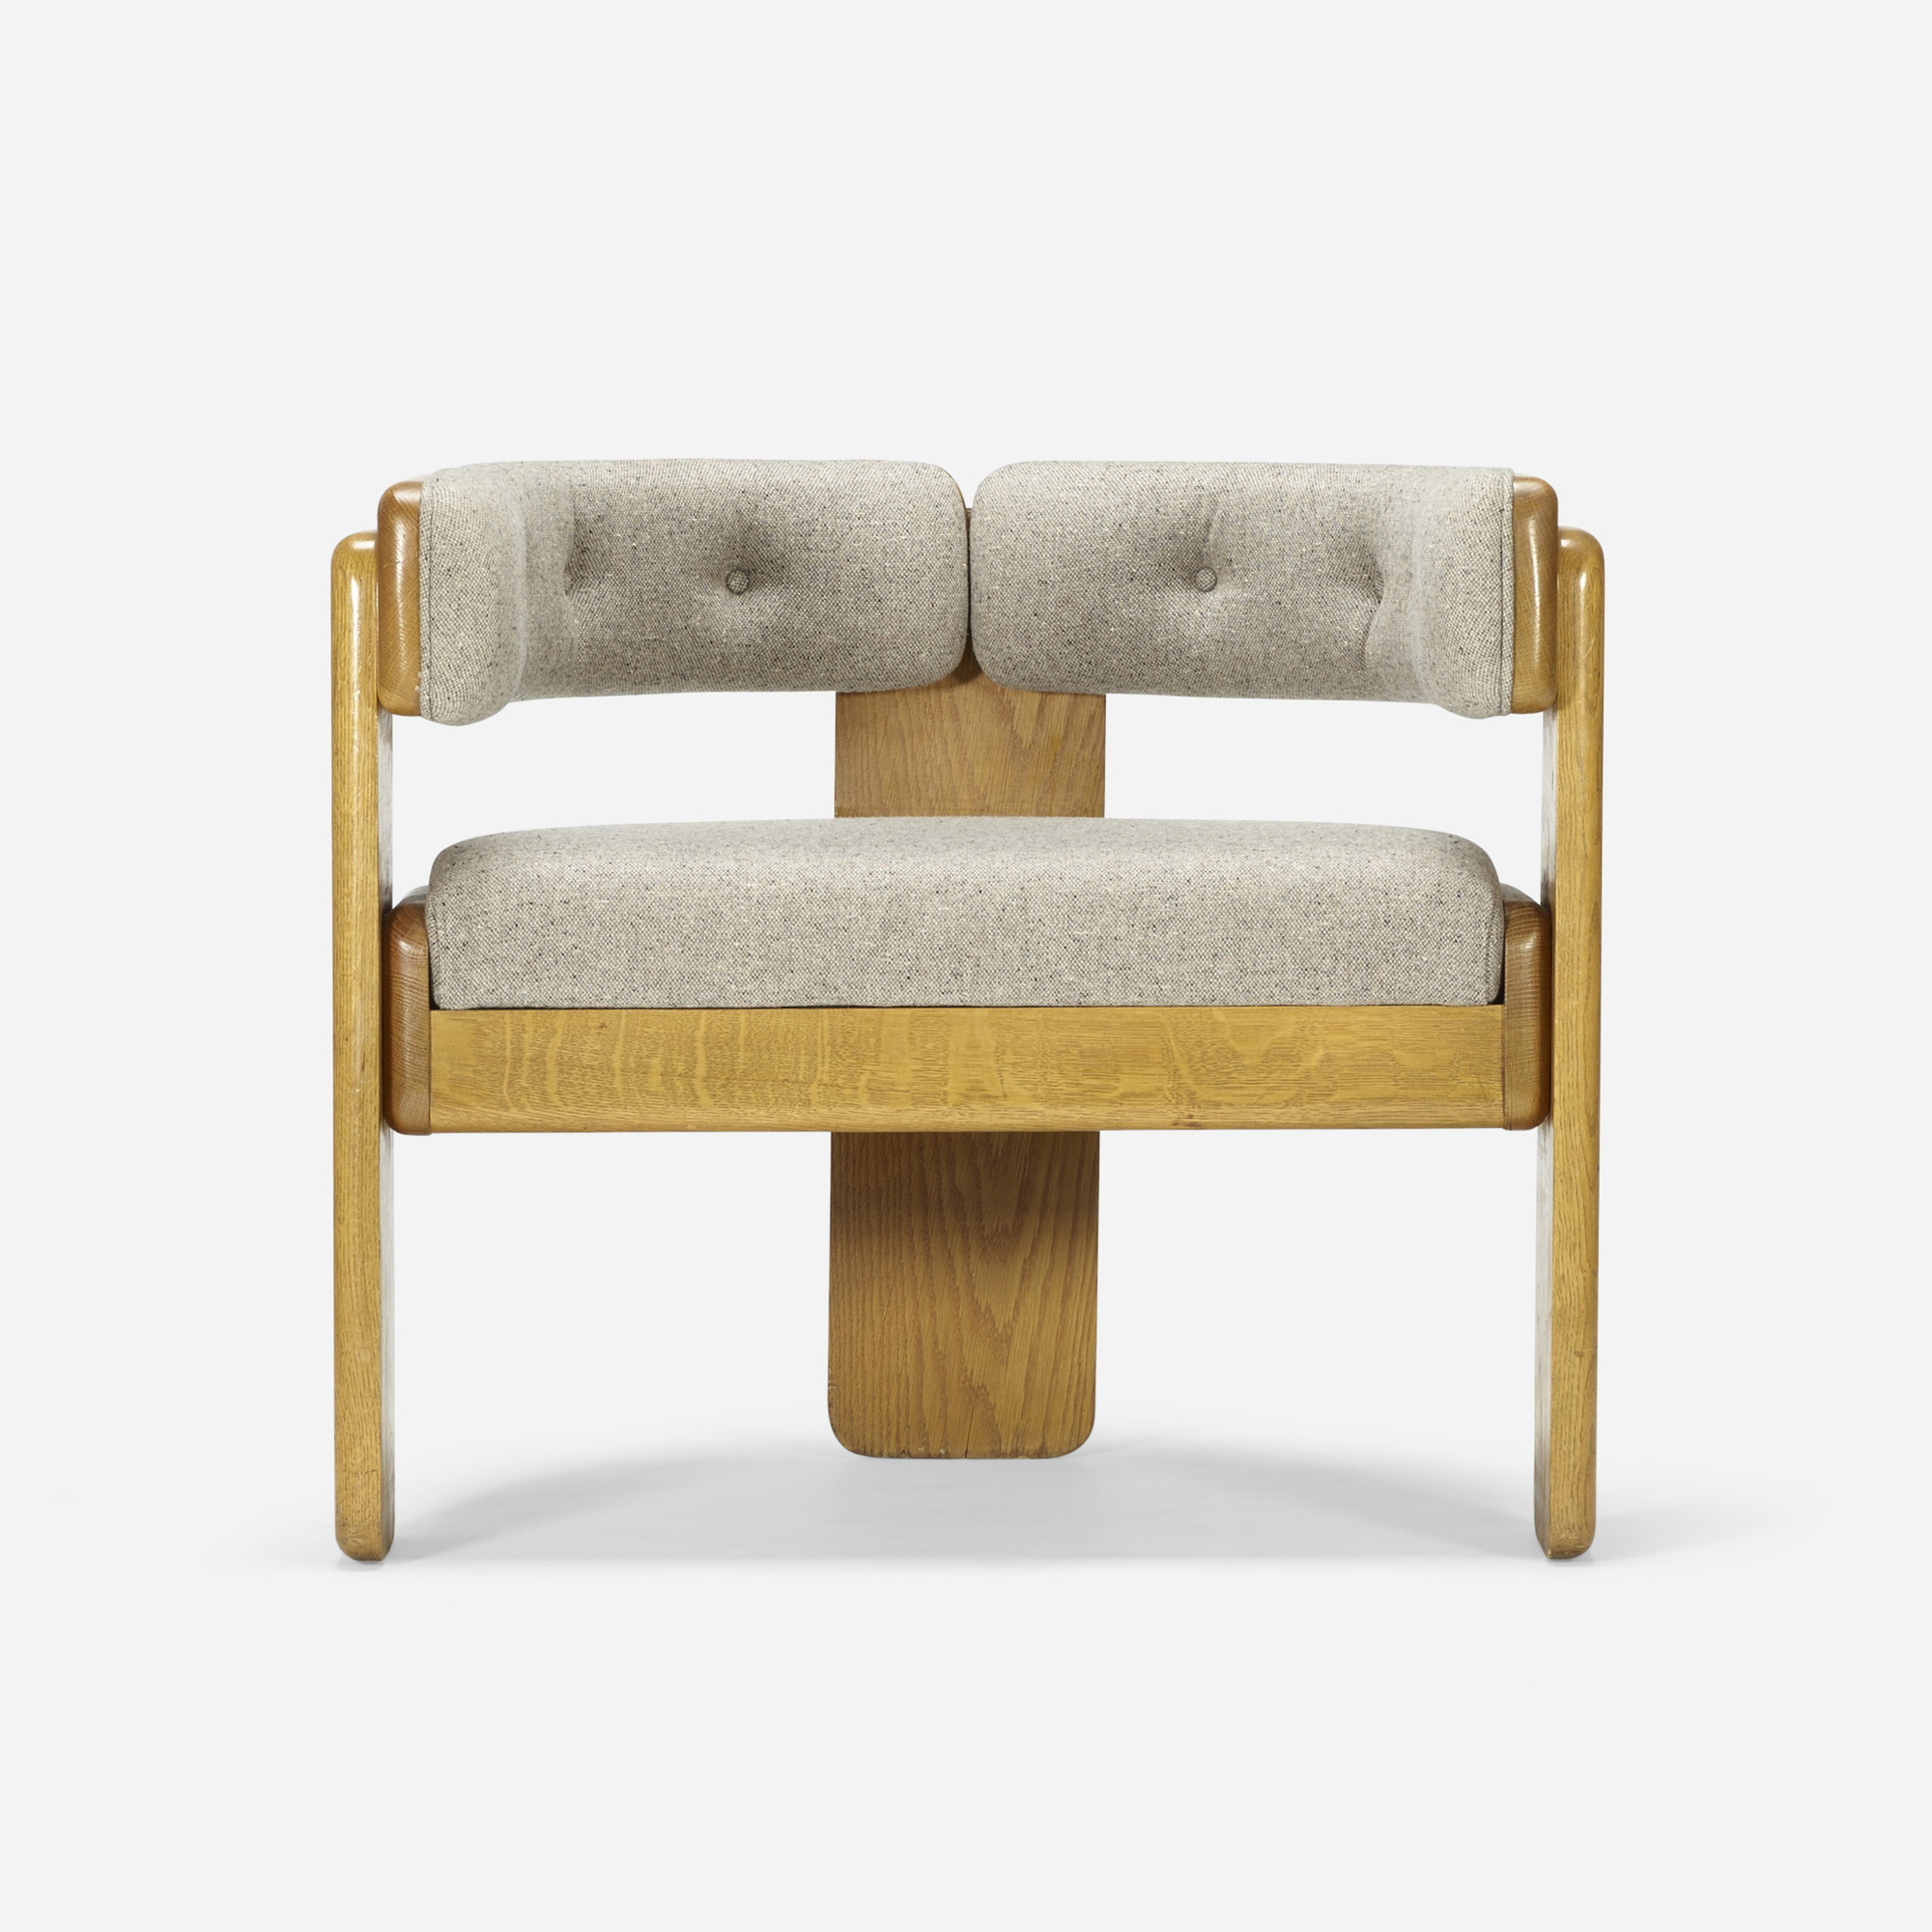 715: Afra and Tobia Scarpa / lounge chair (1 of 2)